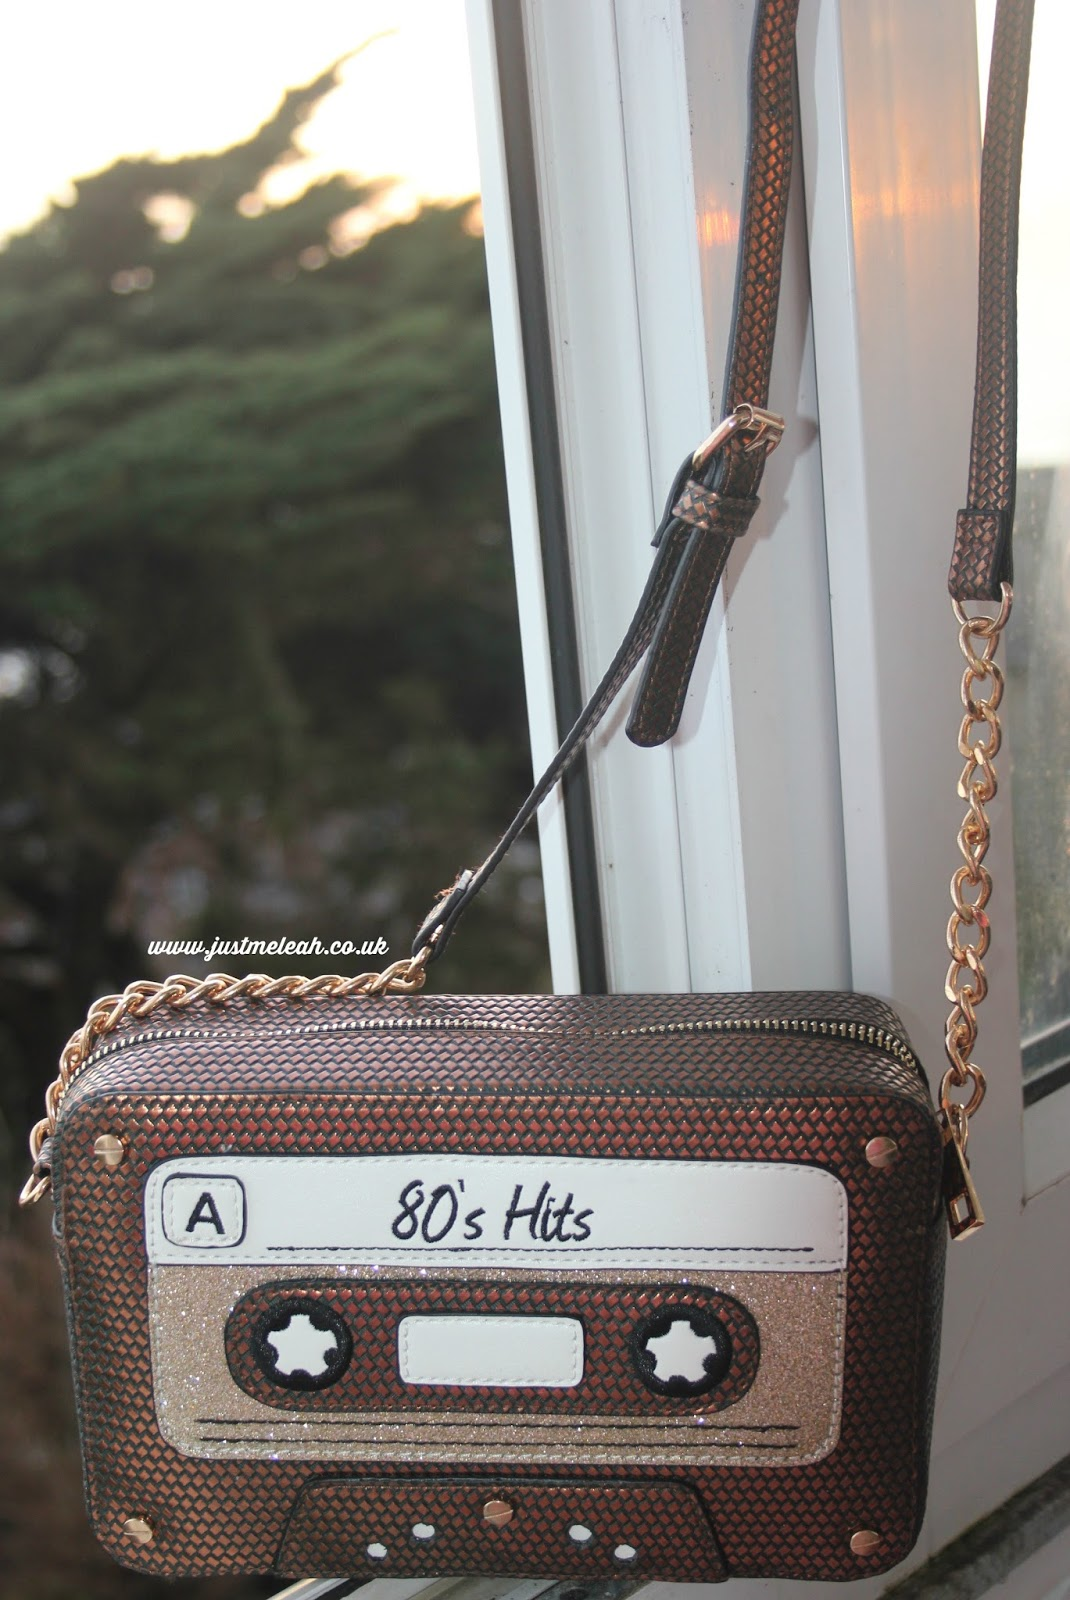 ACCESSORIZE 80S HITS RETRO HANDBAG REVIEW